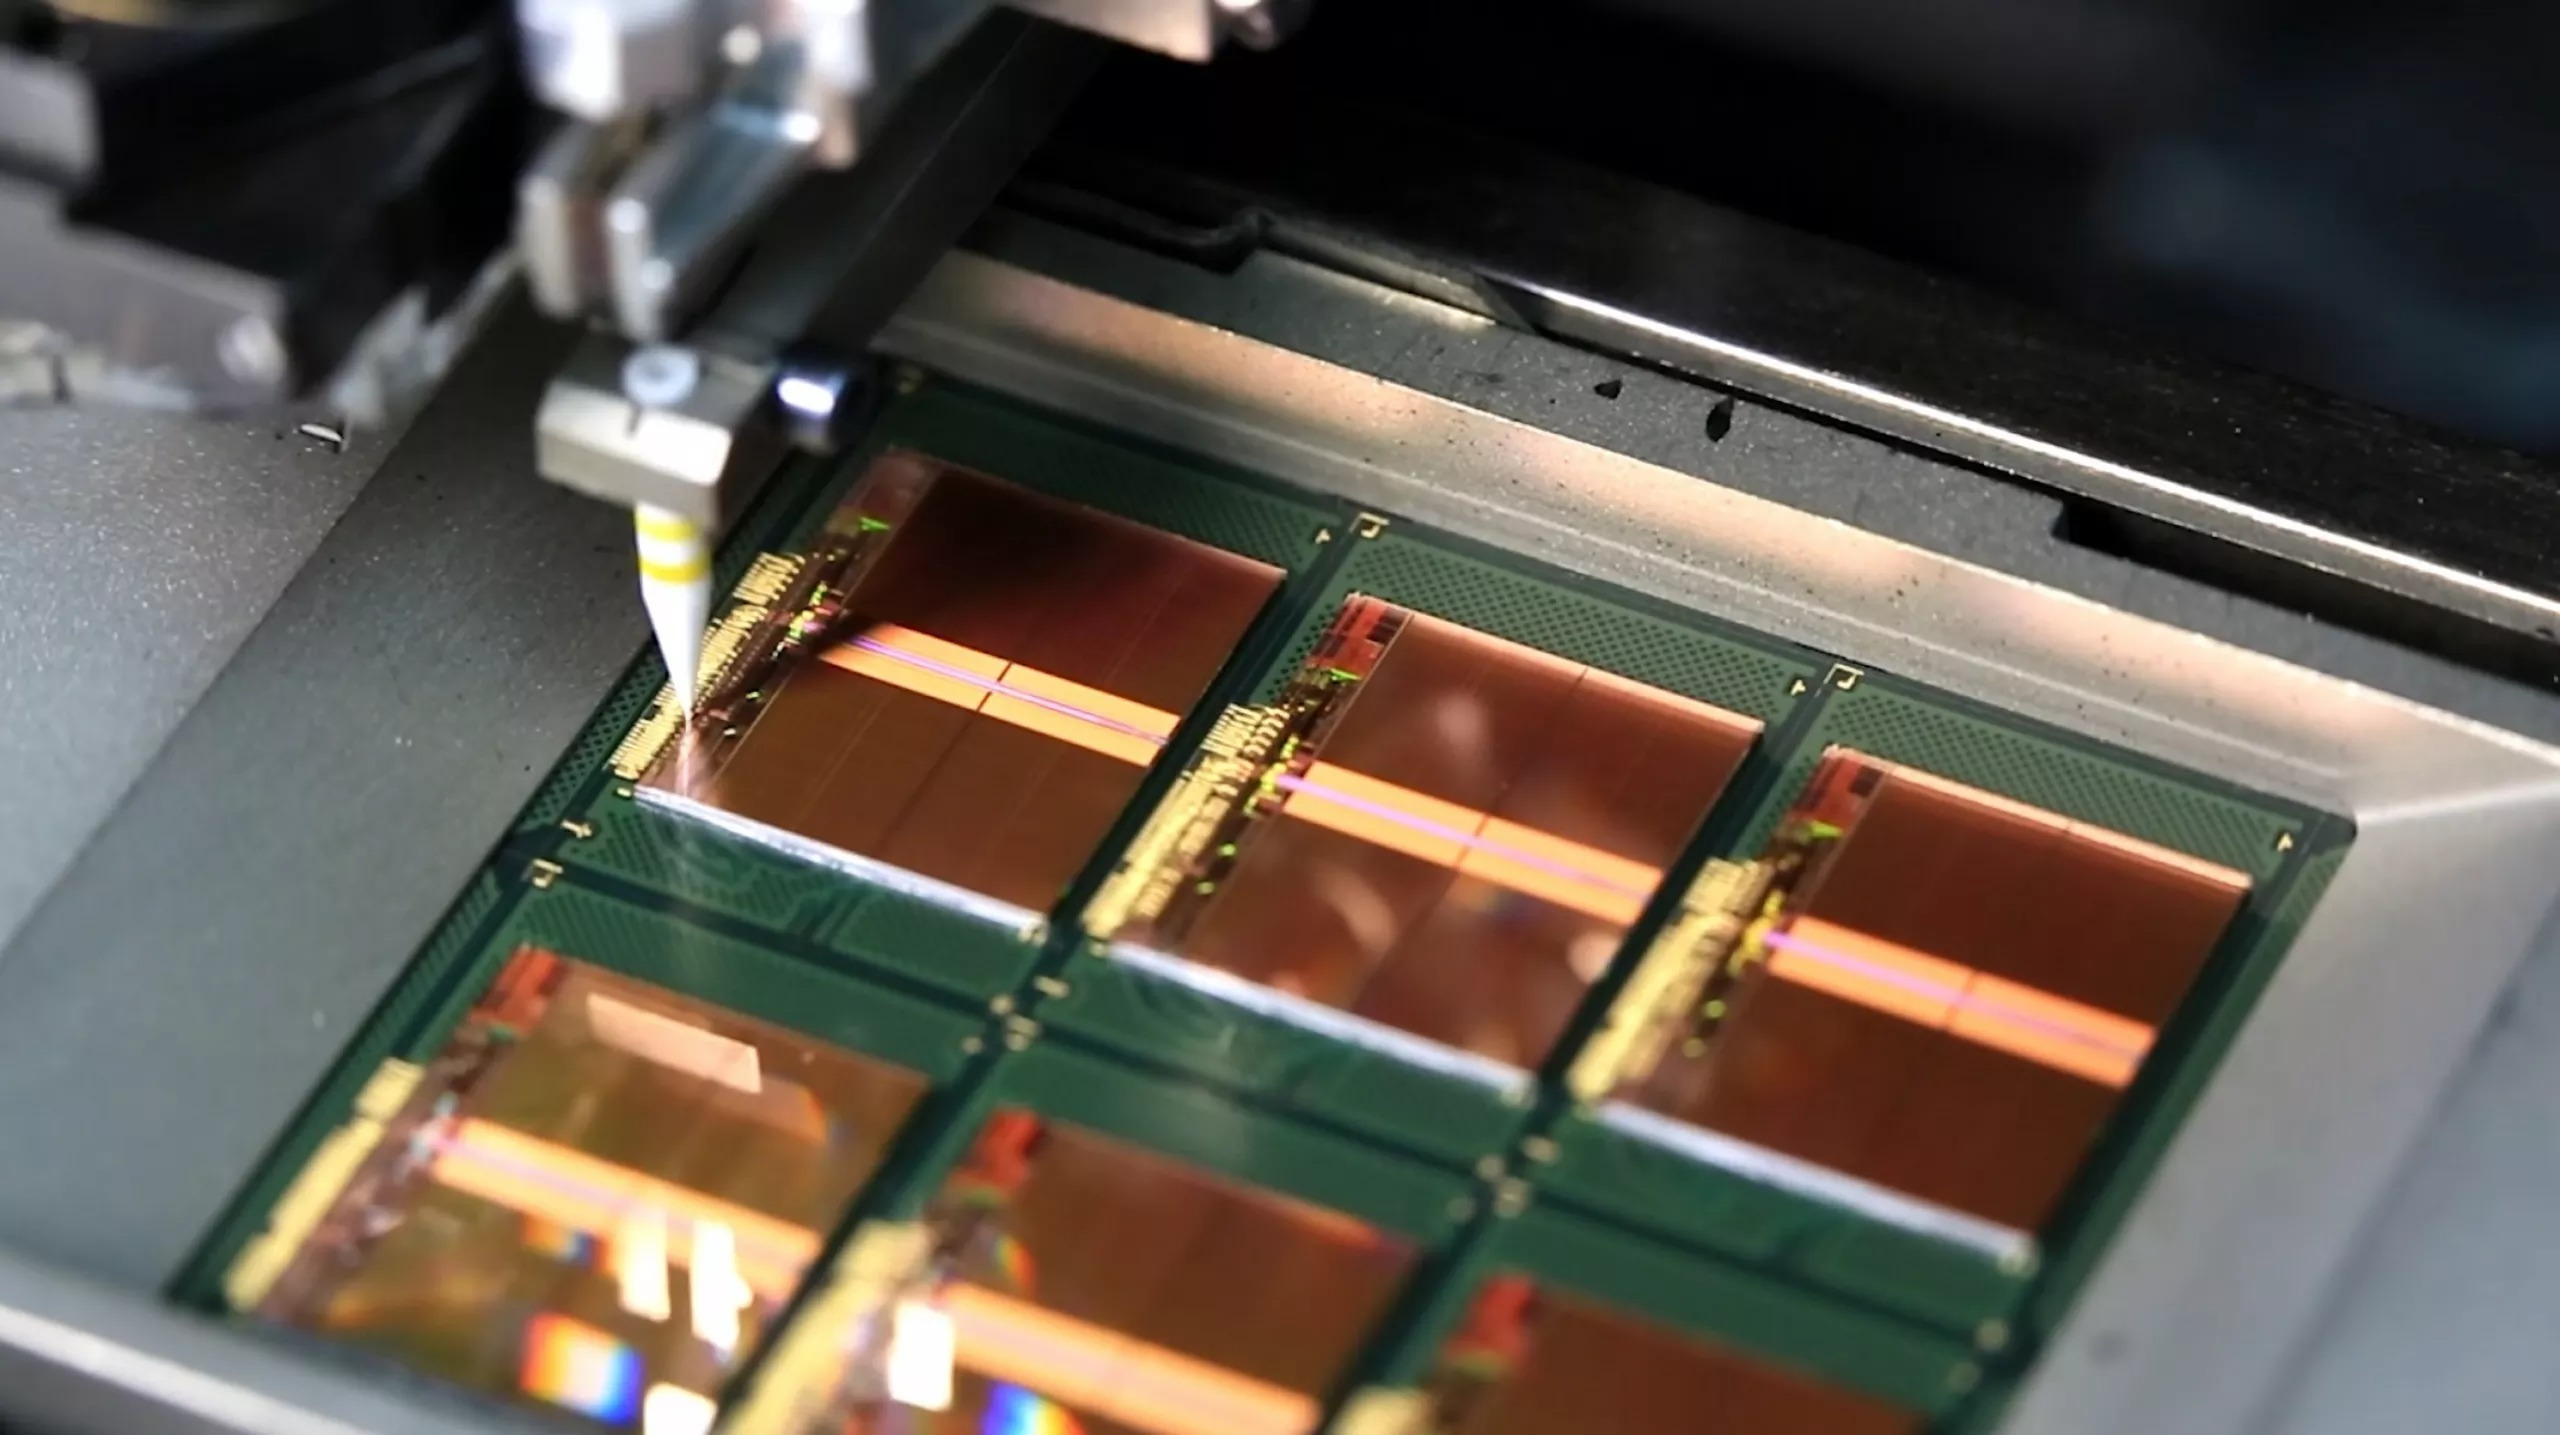 DRAM prices have stopped climbing, now expected to lower in the coming months